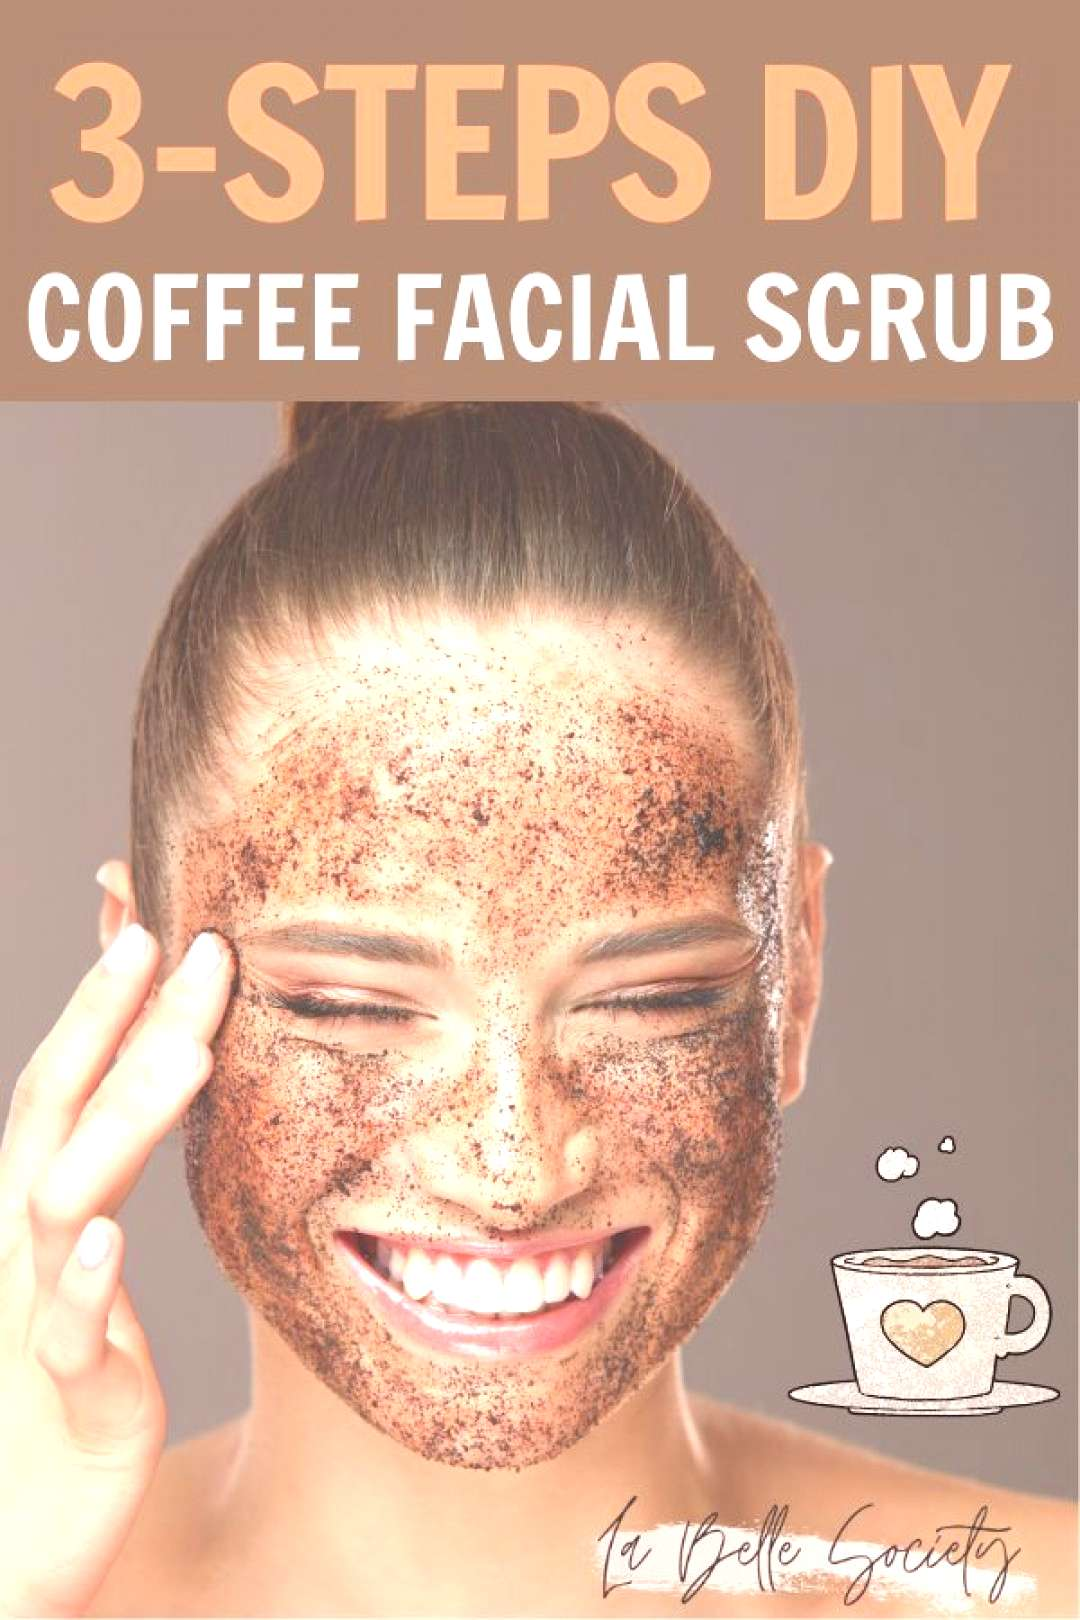 DIY Coffee Face Scrub Recipe for Acne Ever wanted to make a natural exfoliator scrub made out of co